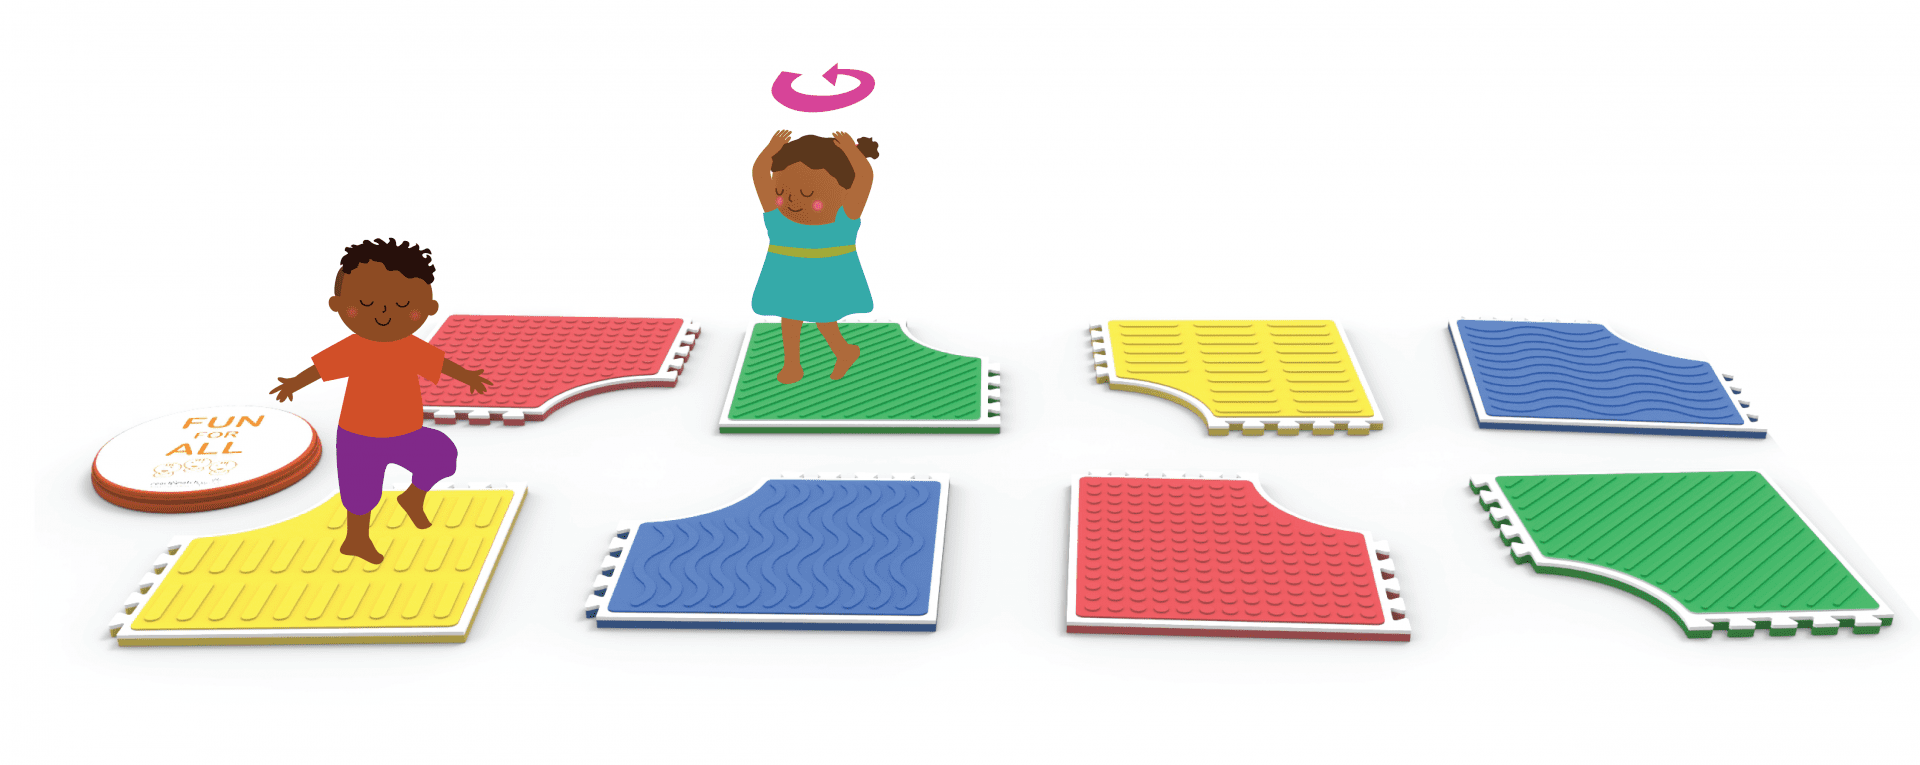 illustration of two students on different reach and match play mats lined up in two rows